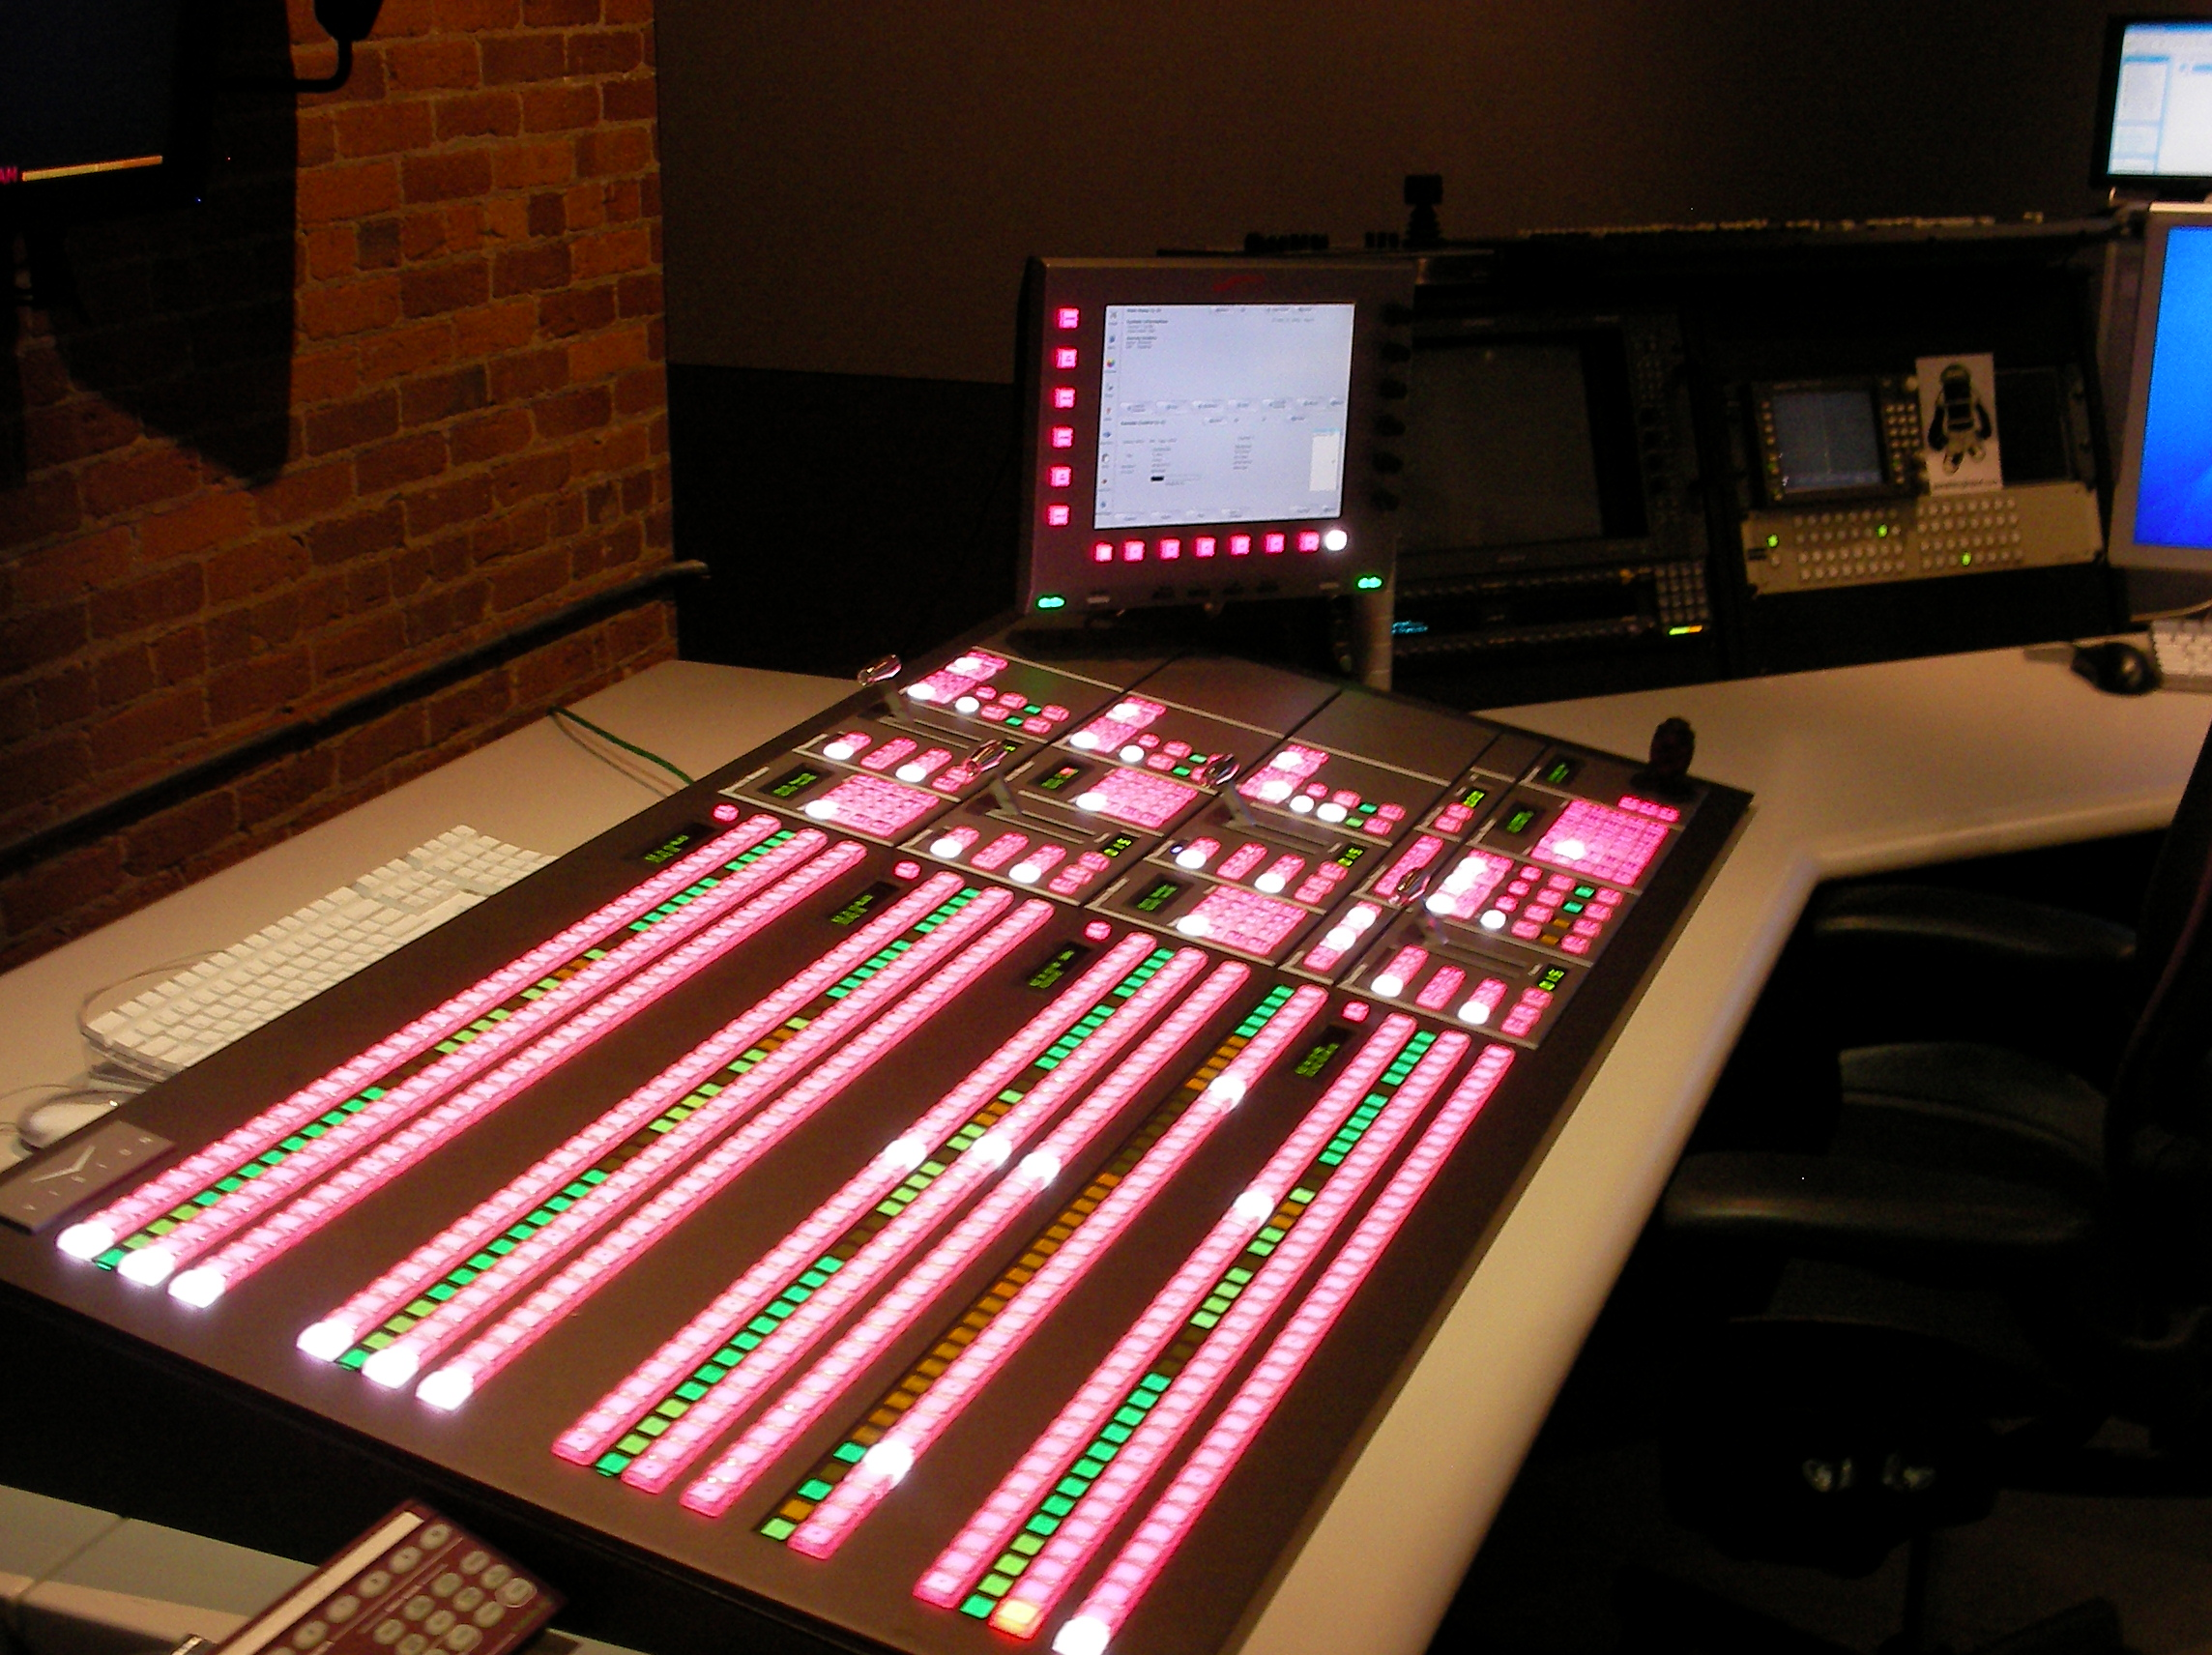 File:Ross Video Vision 4 vision mixer (control panel) jpg - Wikipedia